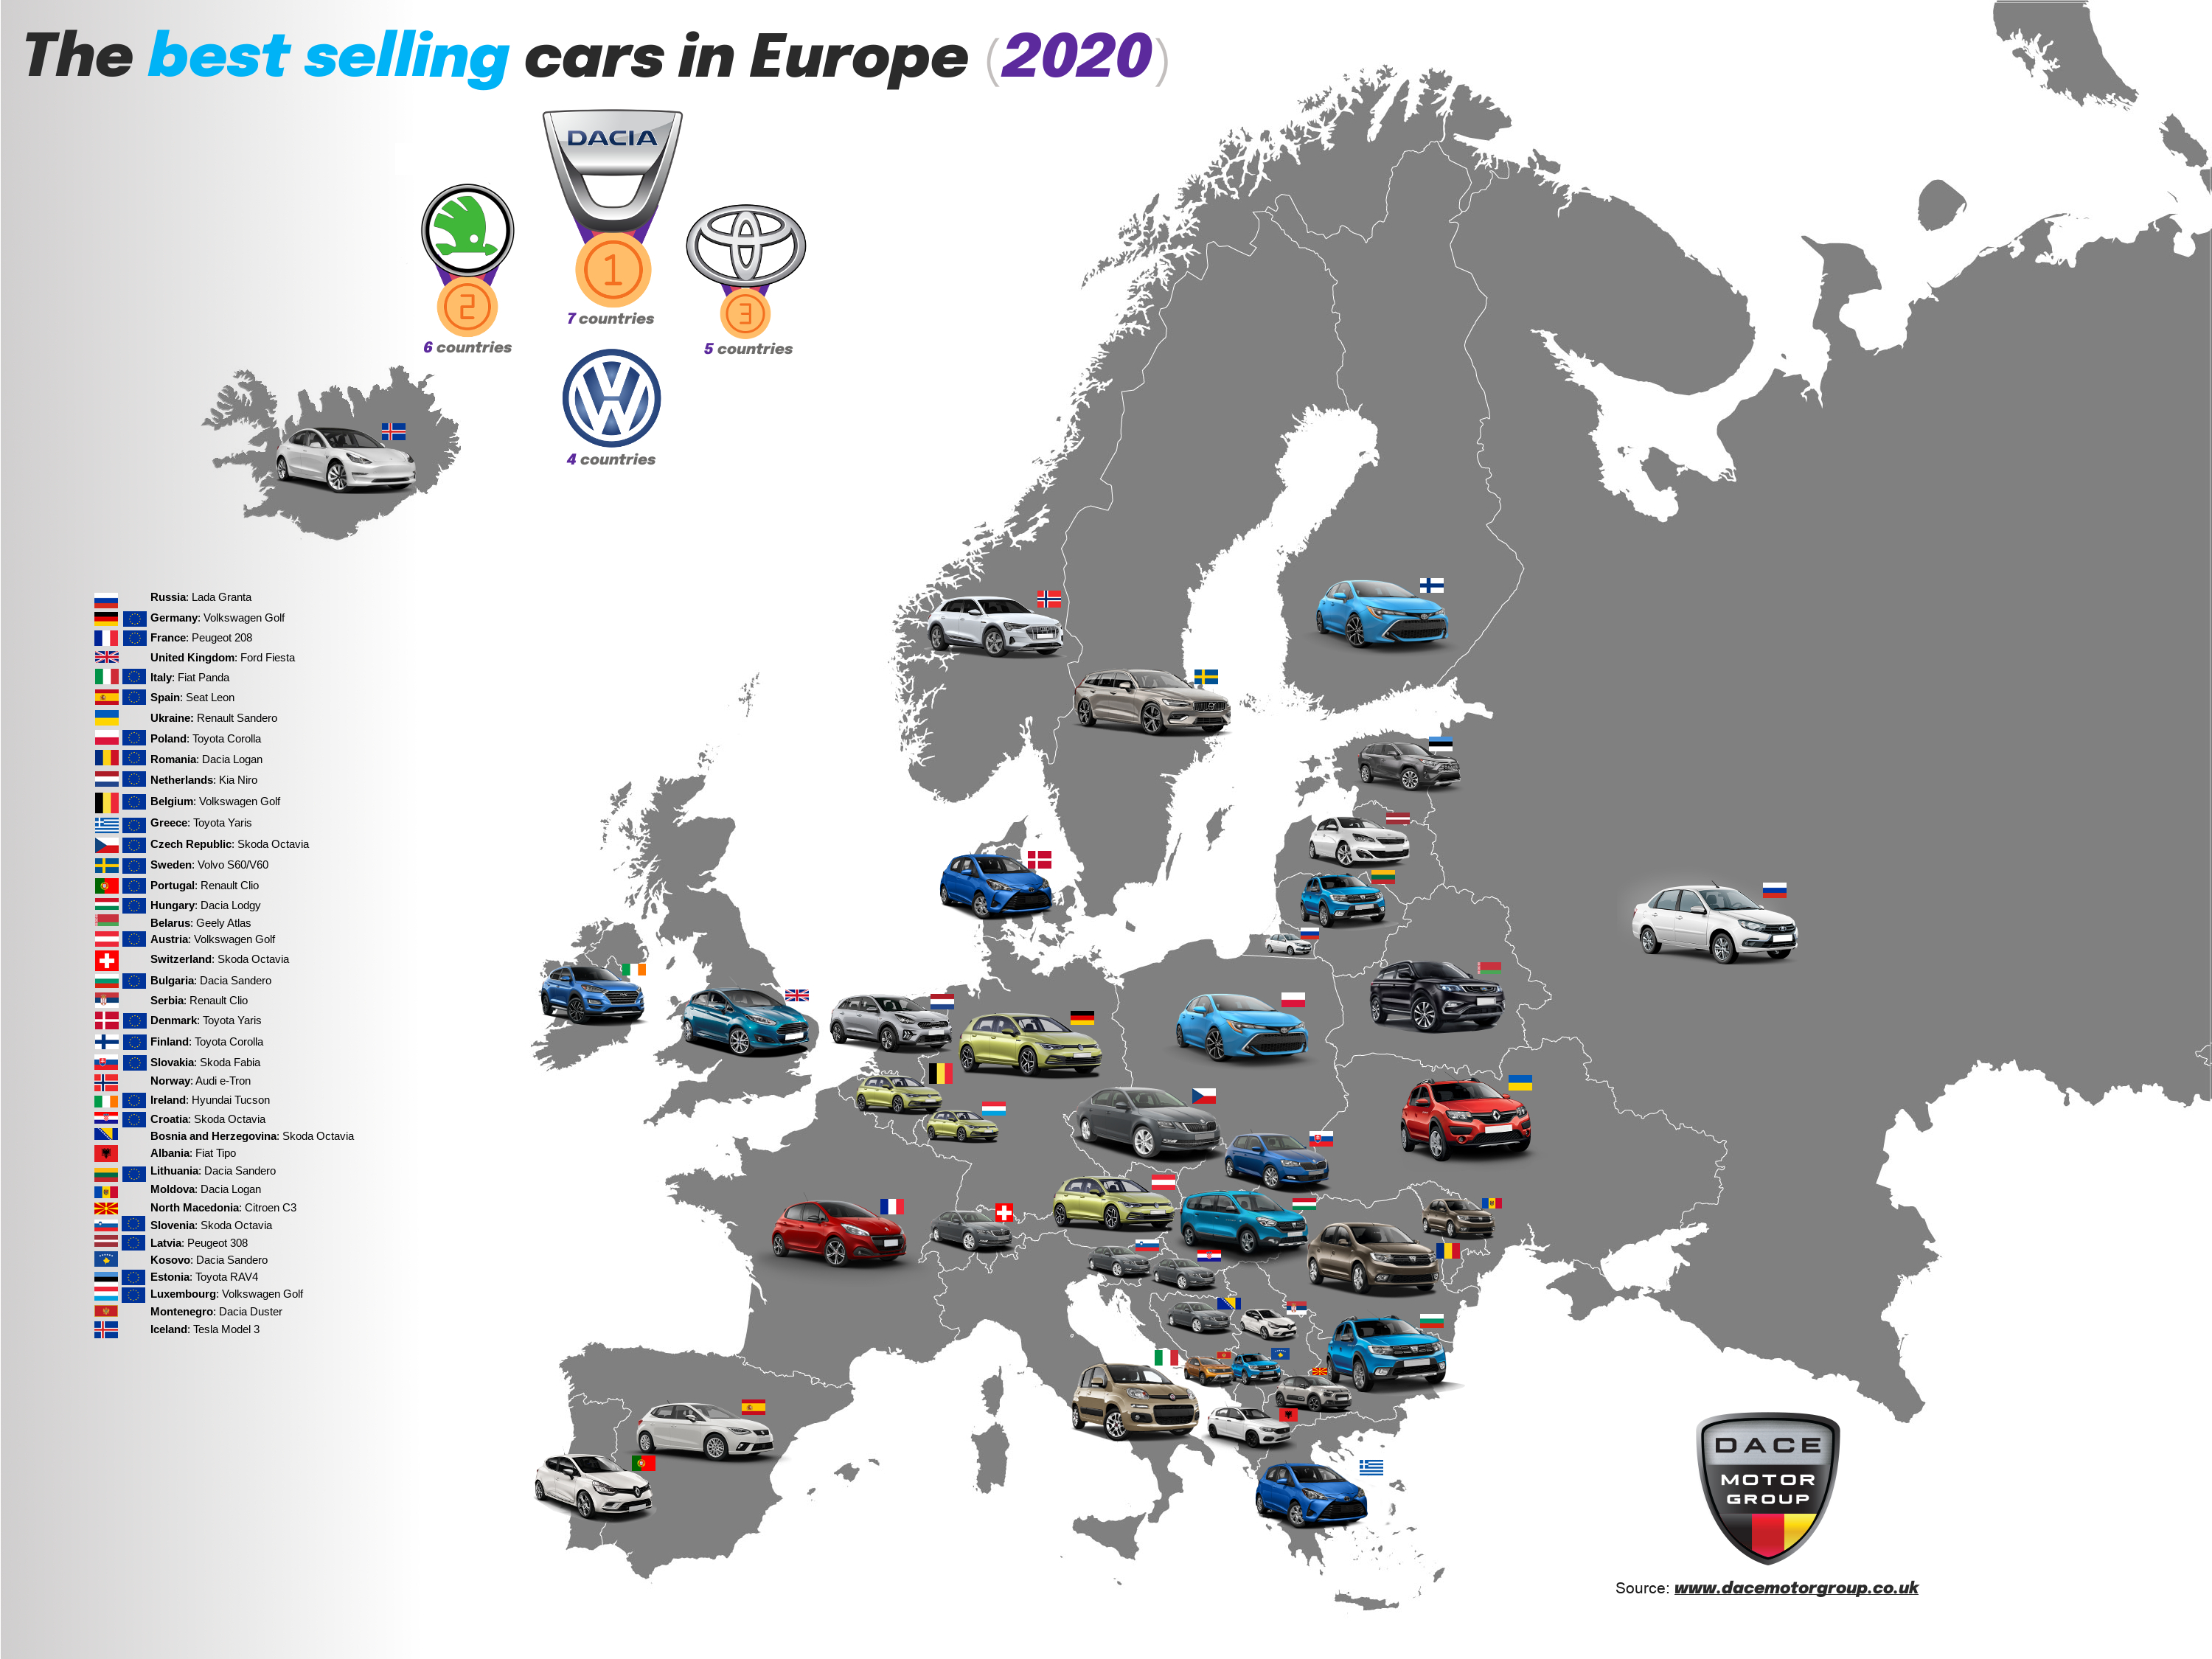 The Best Selling Cars in Europe 2020 (Infographic Map)